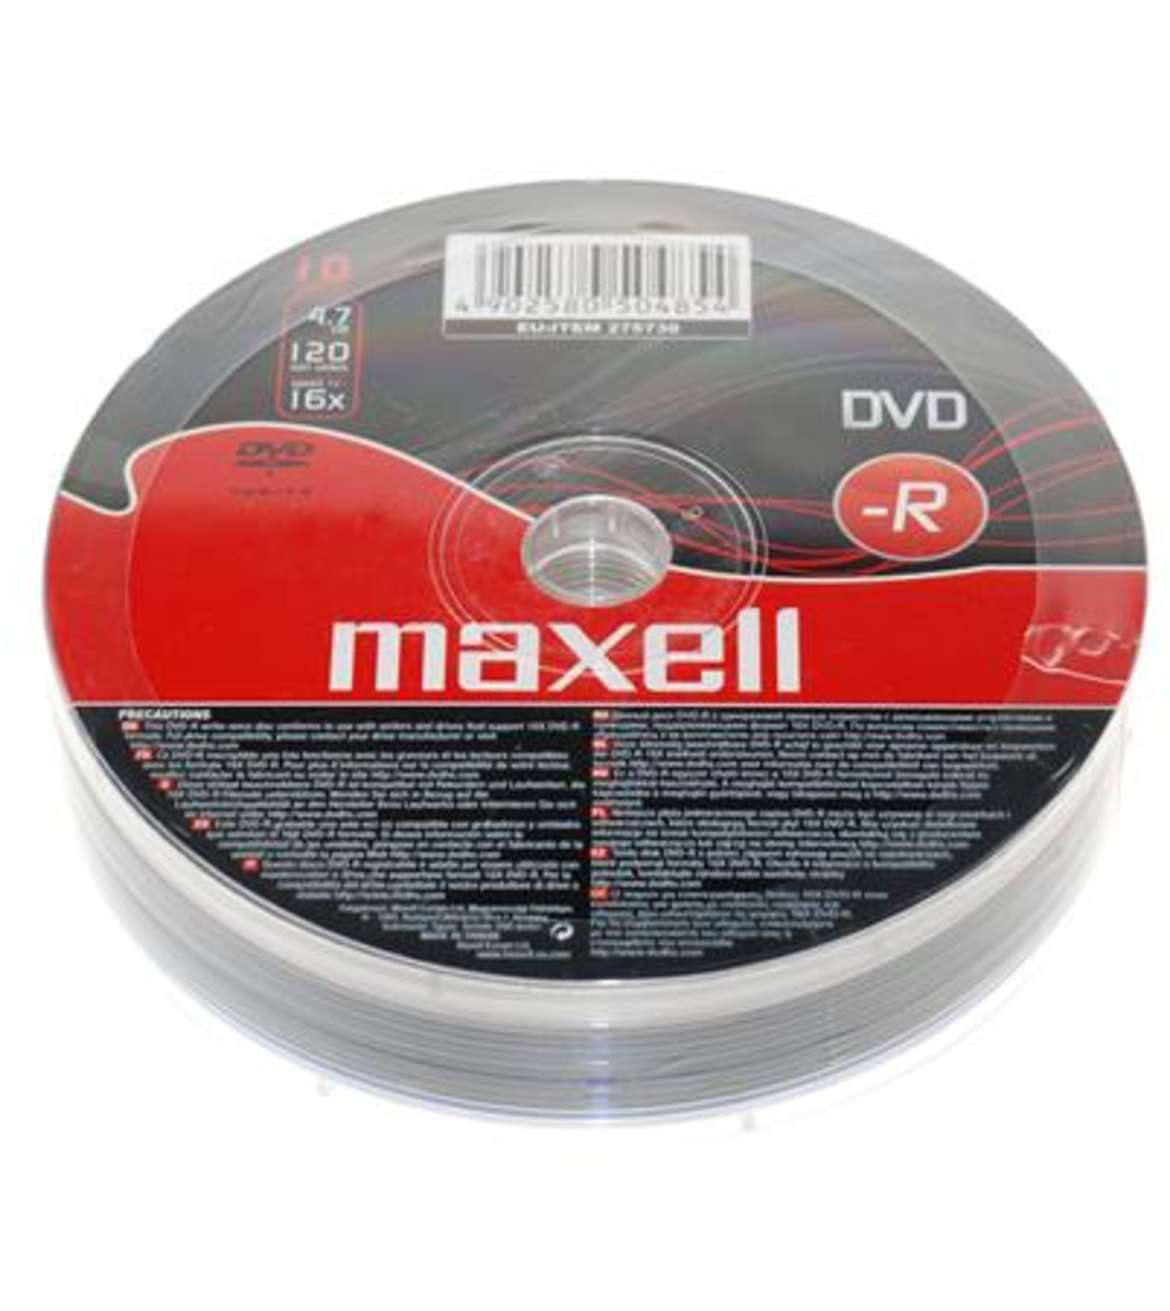 MAXELL DVD-R 4.7GB 16X ECONOMIC 10S